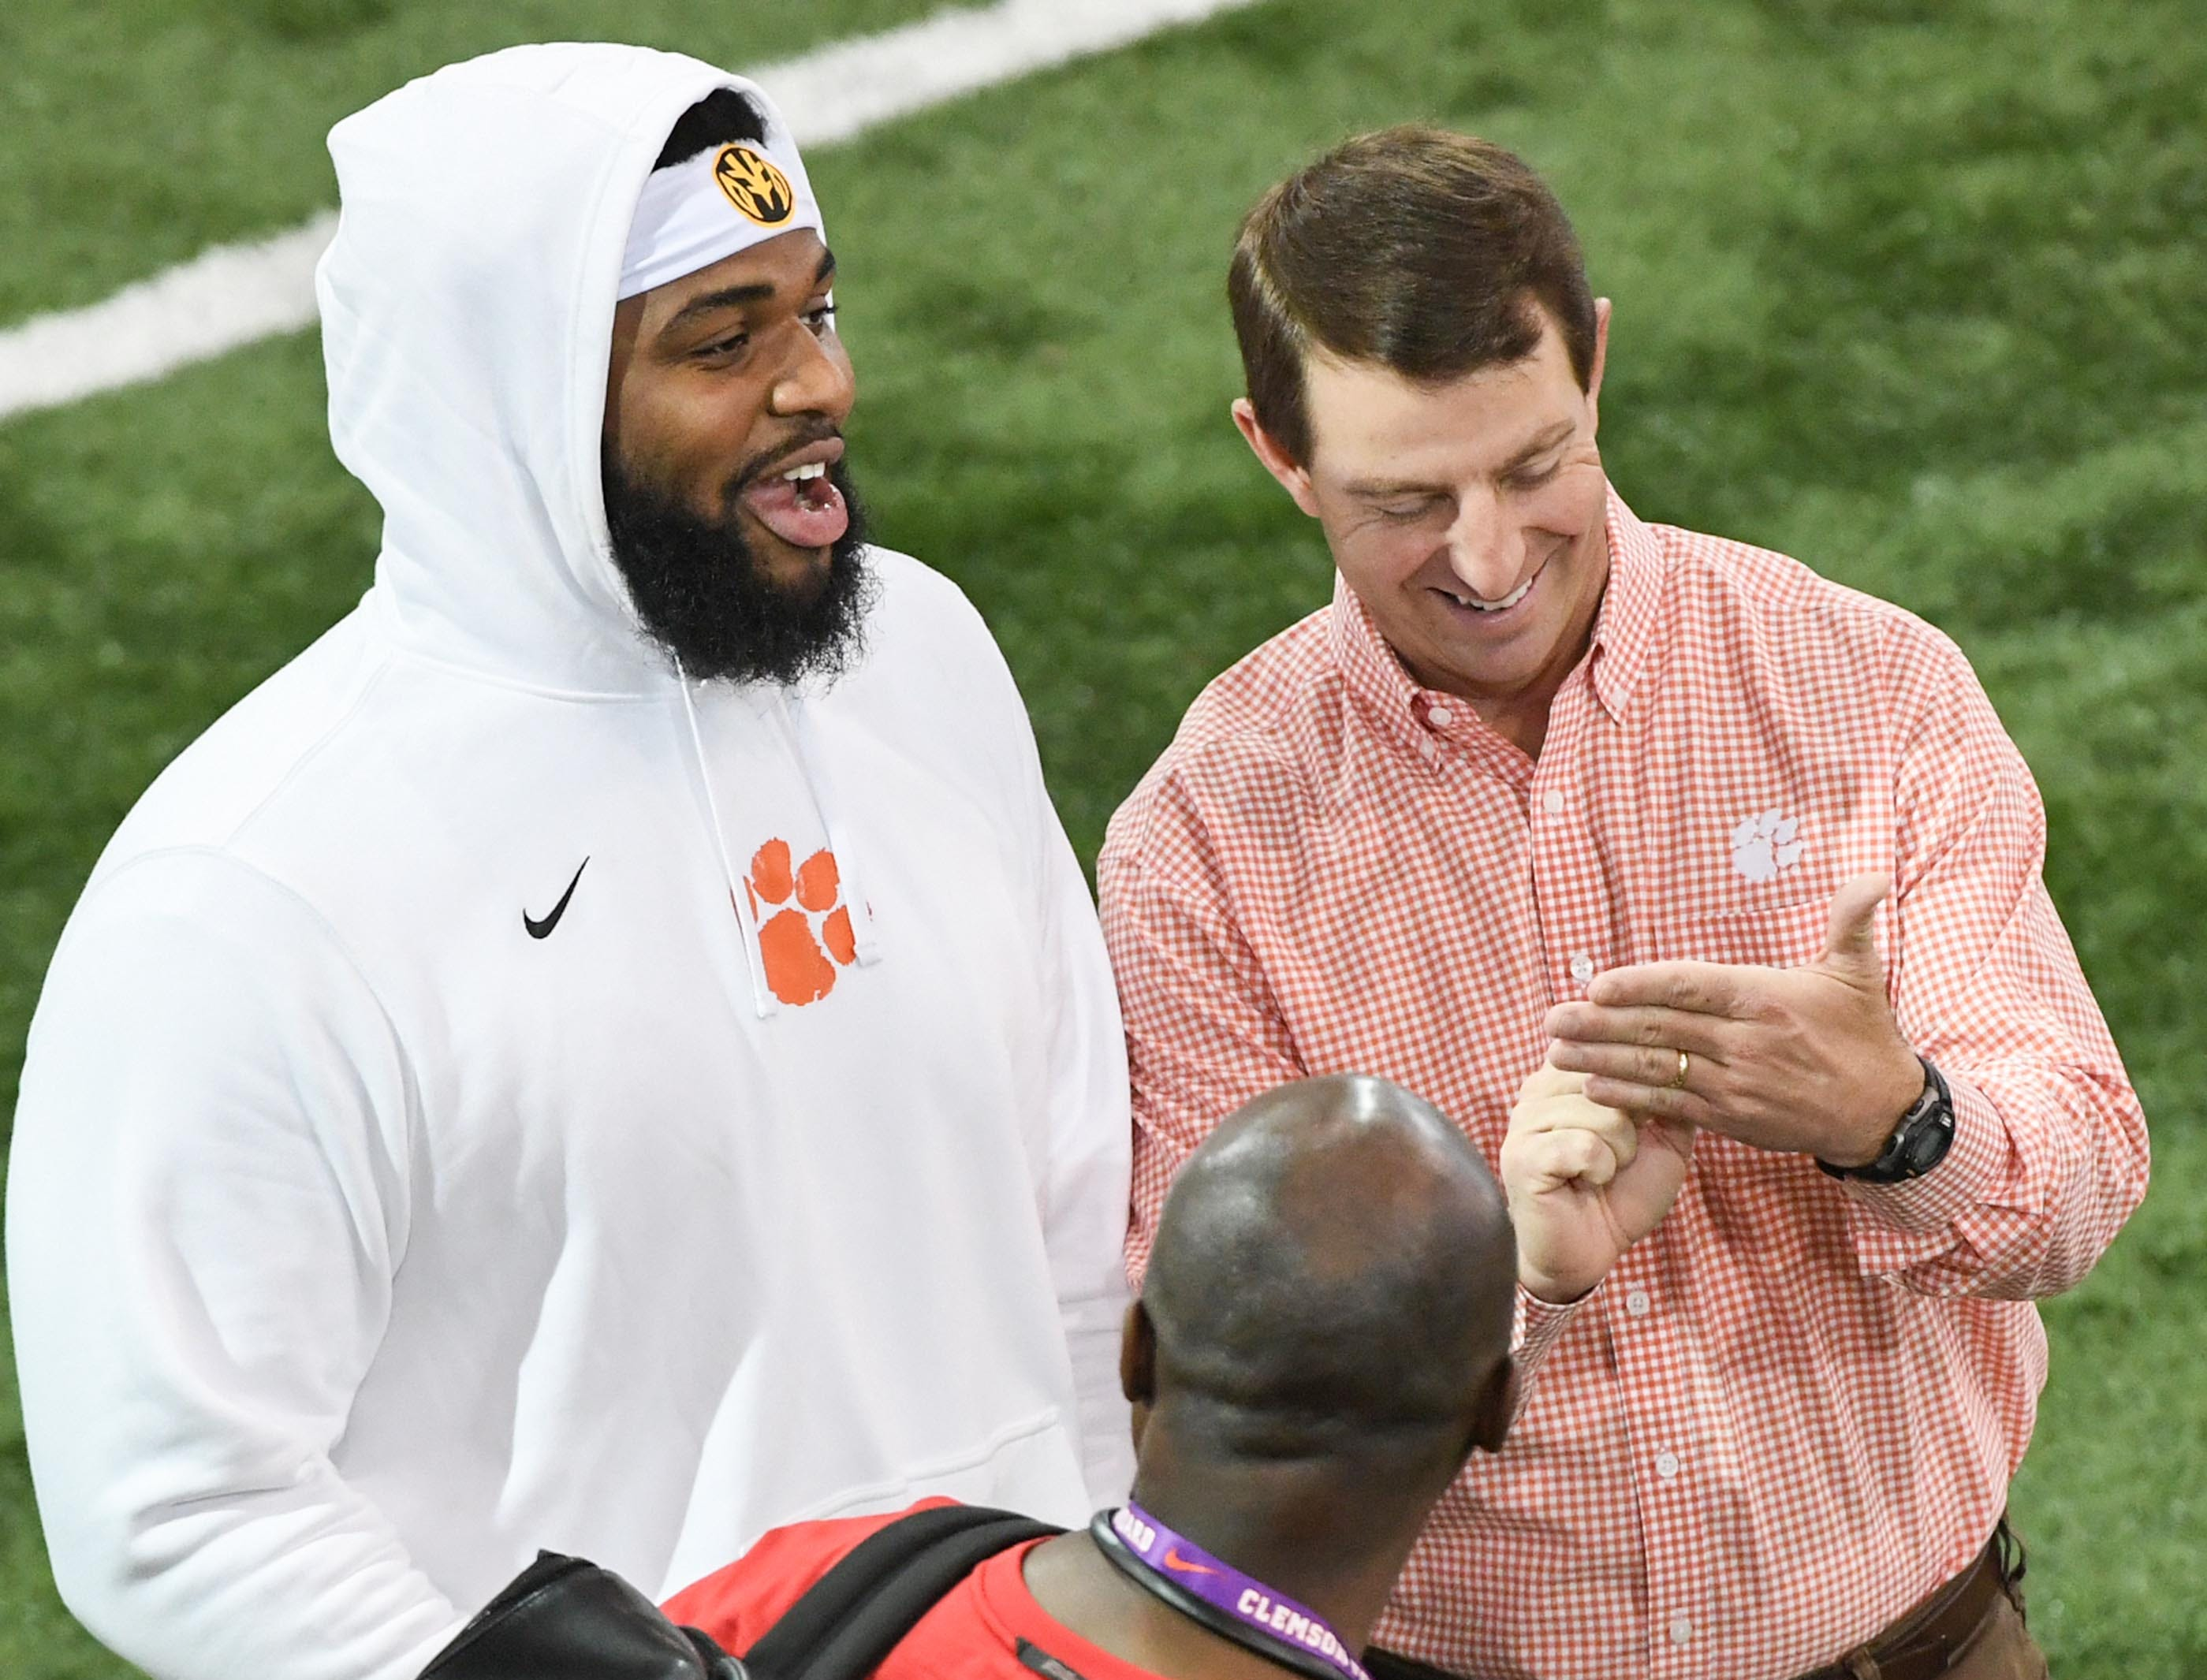 Defensive lineman Christian Wilkins and Clemson head coach Dabo Swinney talk during Clemson pro day at the Poe Indoor Facility in Clemson Thursday, March 14, 2019.